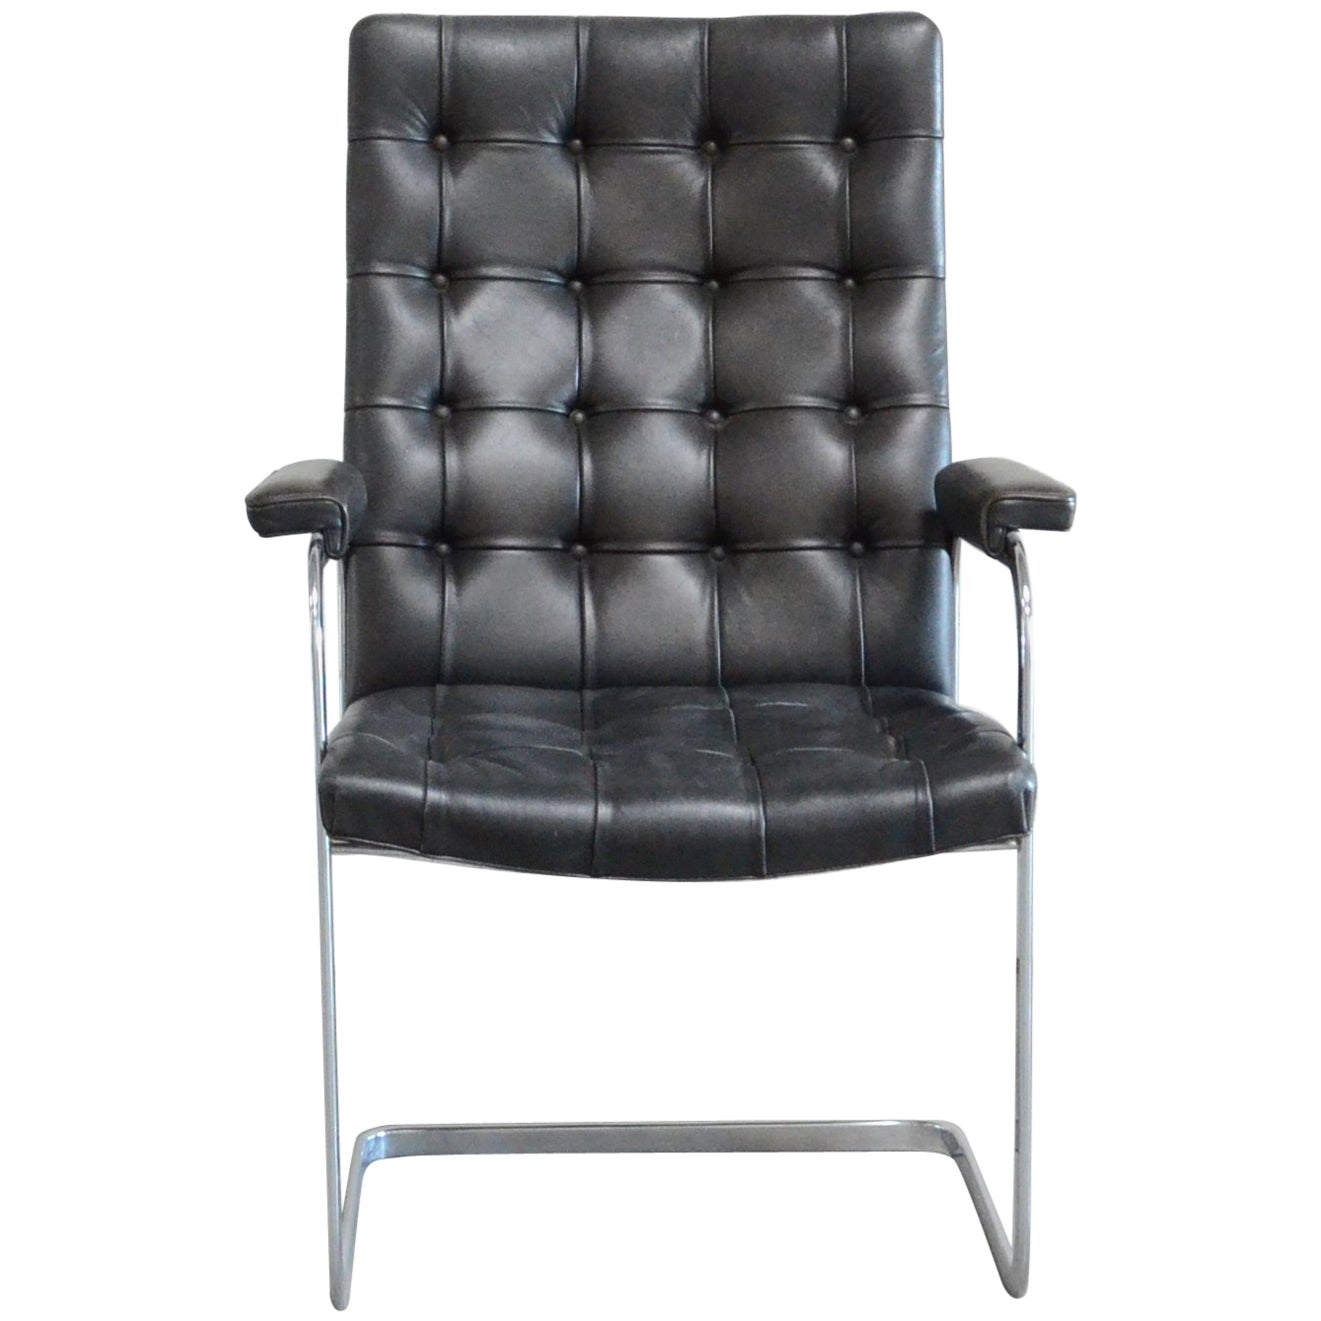 Robert Haussmann De Sede Rh 305 Highback Chair Black